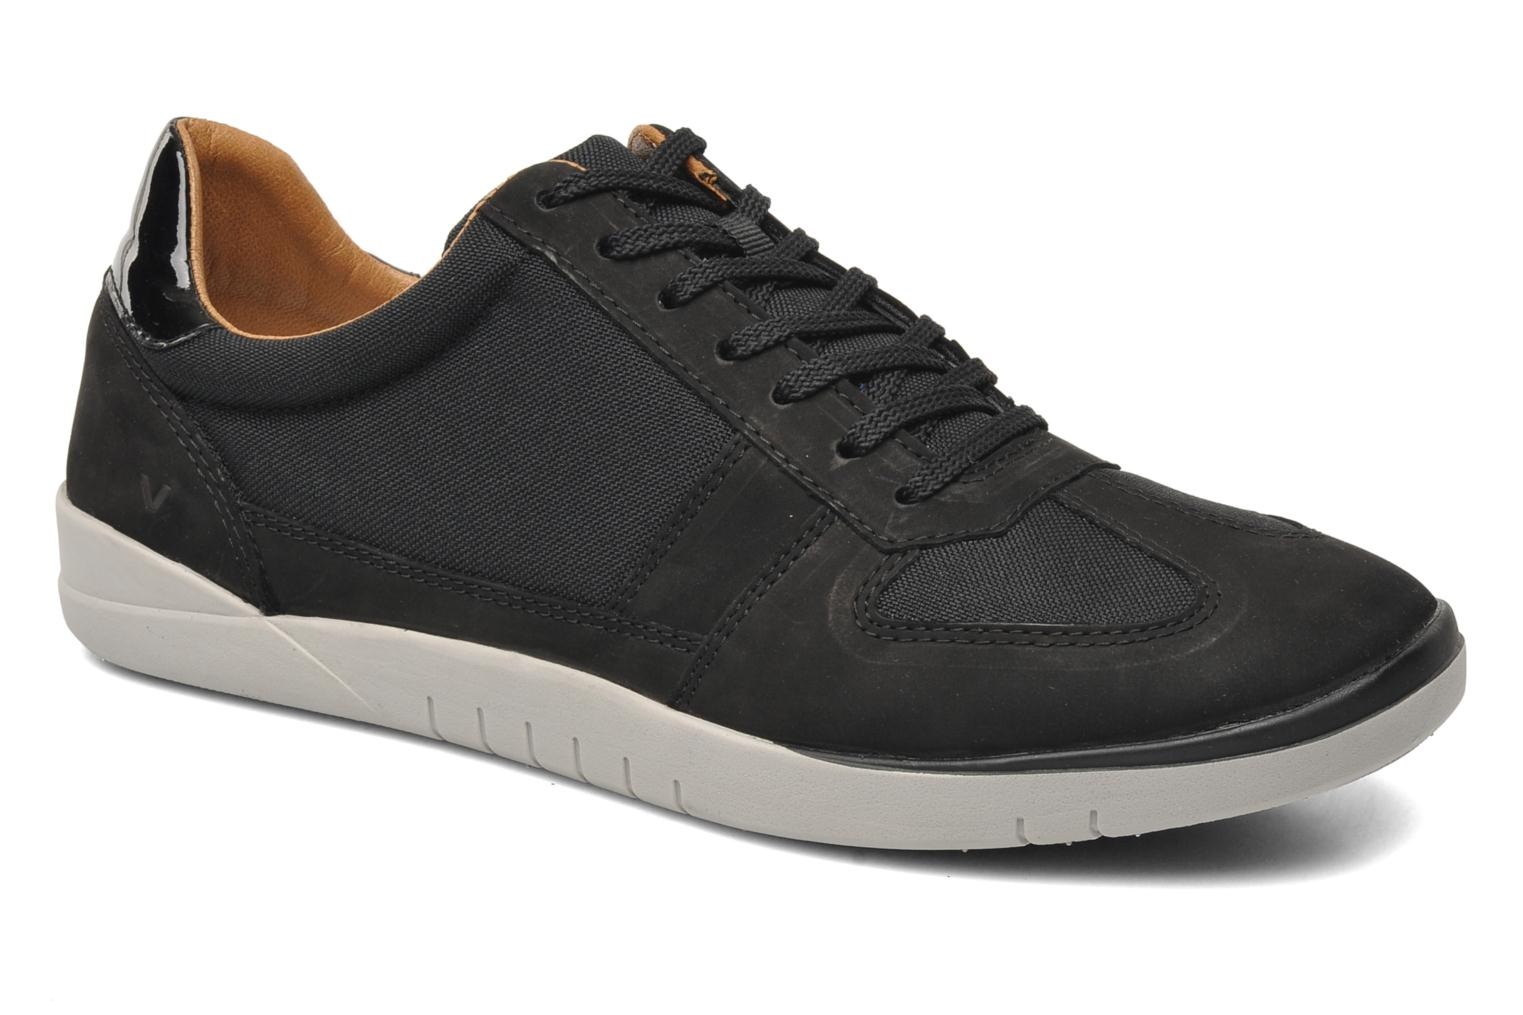 Sneakers Carter 3787-102 by Vagabond